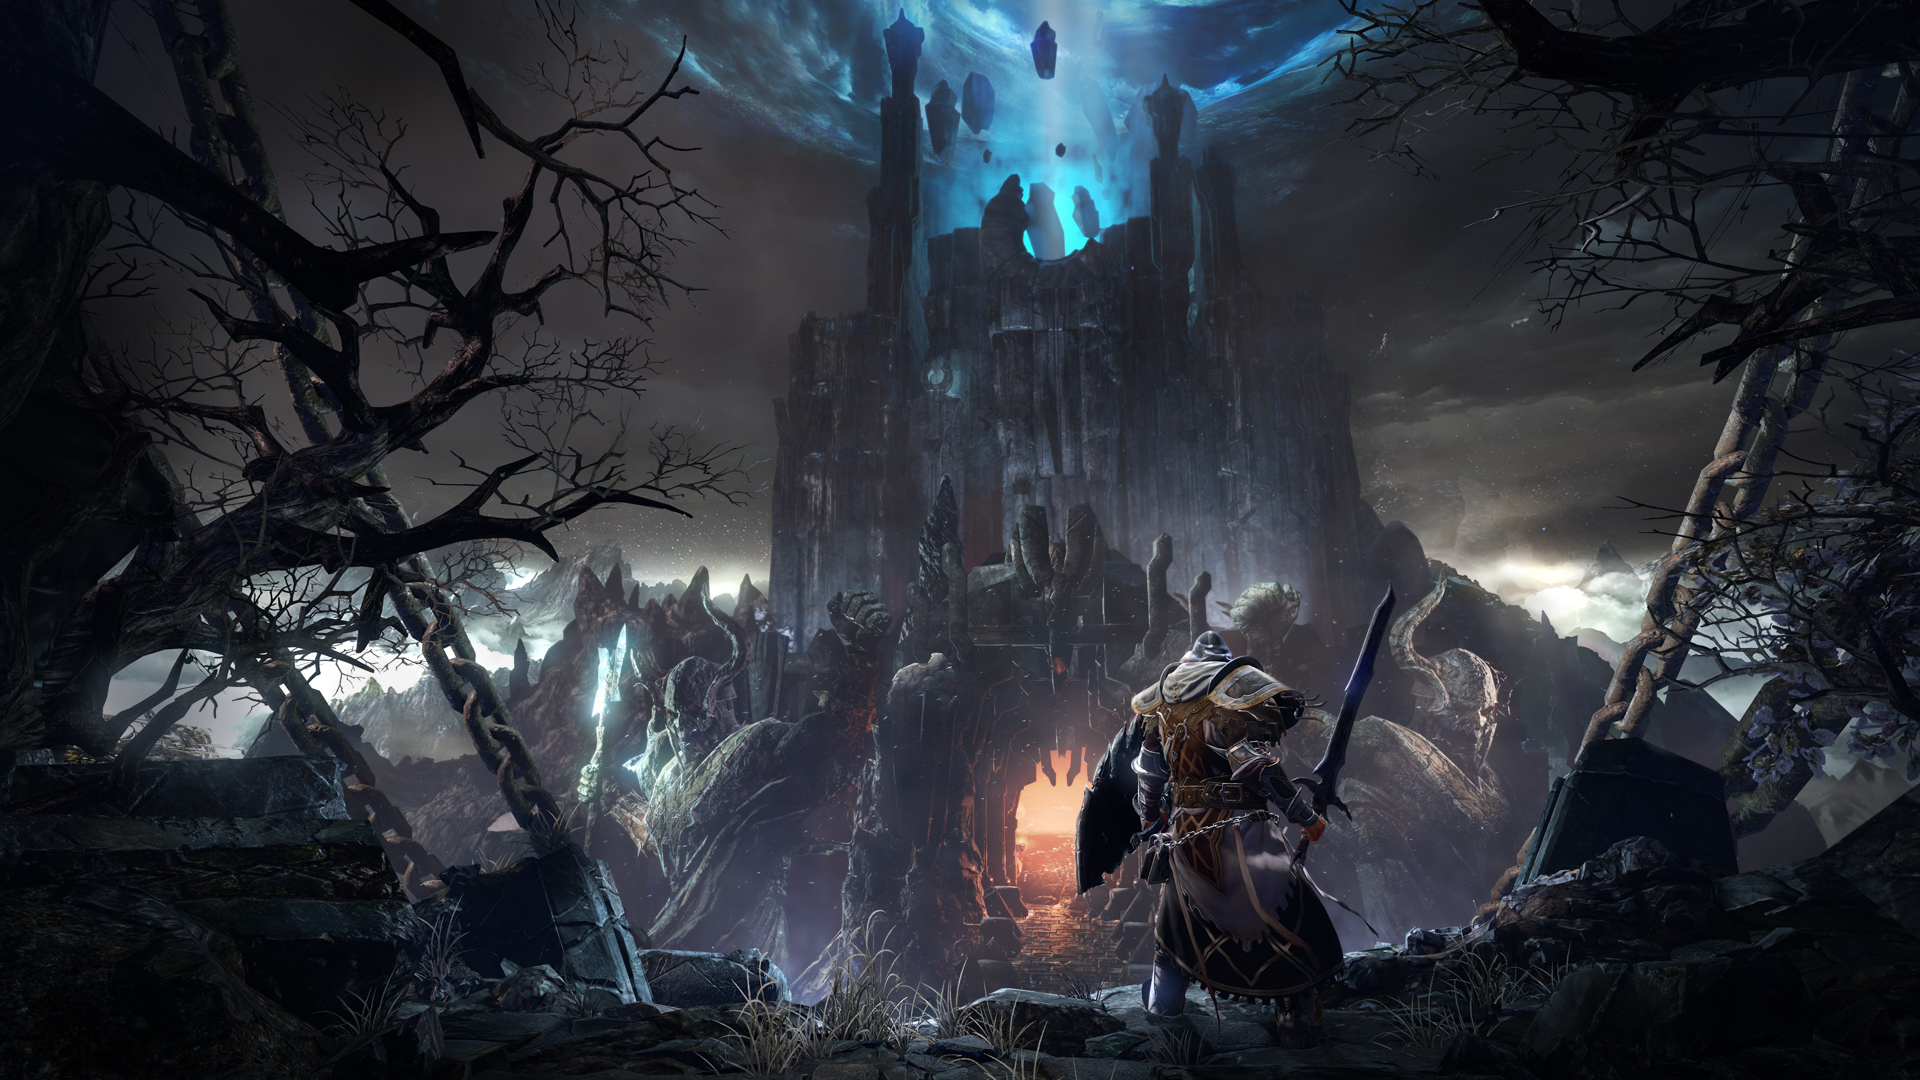 General 1920x1080 Lords of the Fallen video games video game art